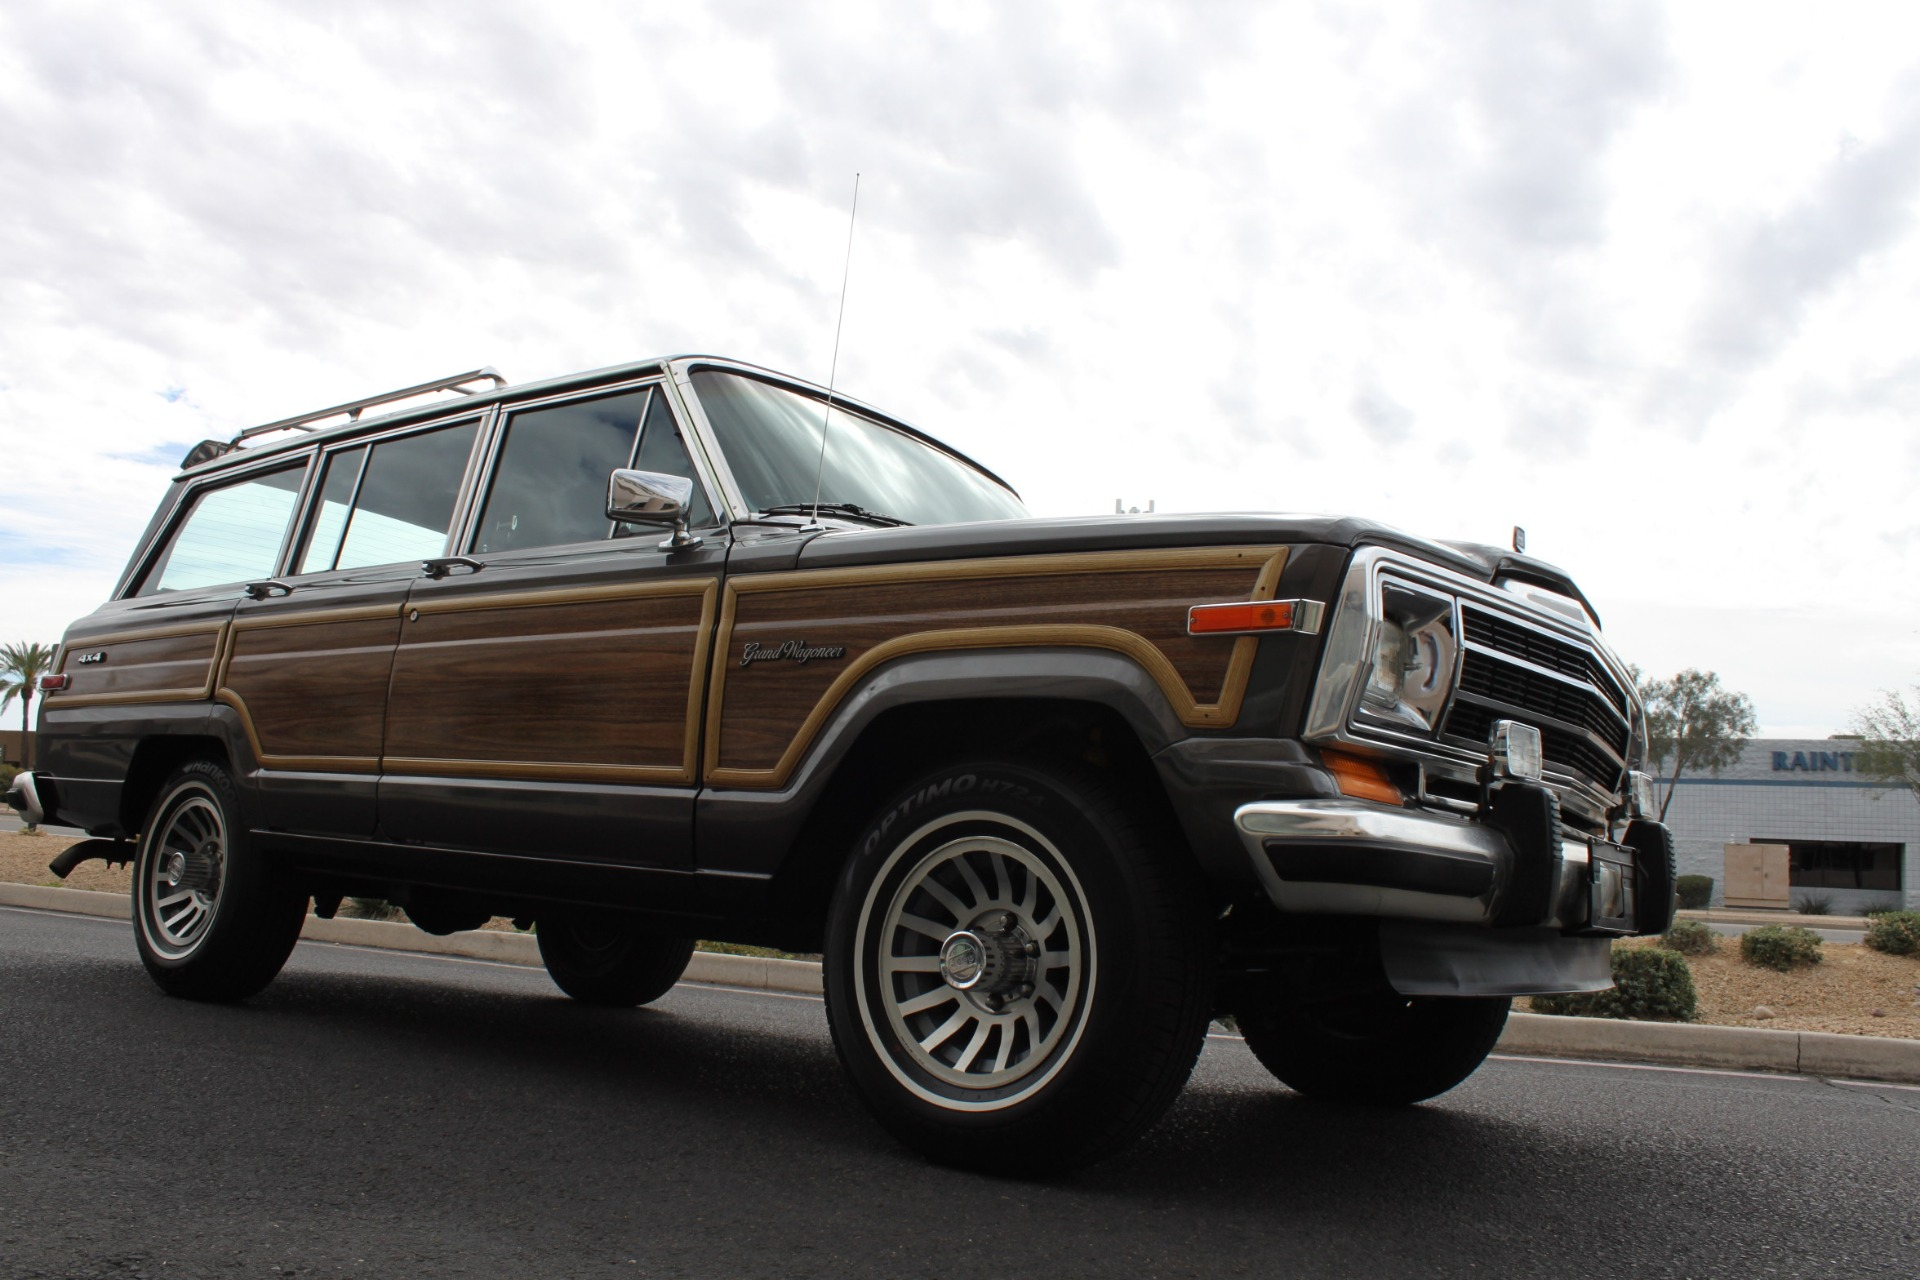 Used-1989-Jeep-Grand-Wagoneer-4X4-Land-Cruiser